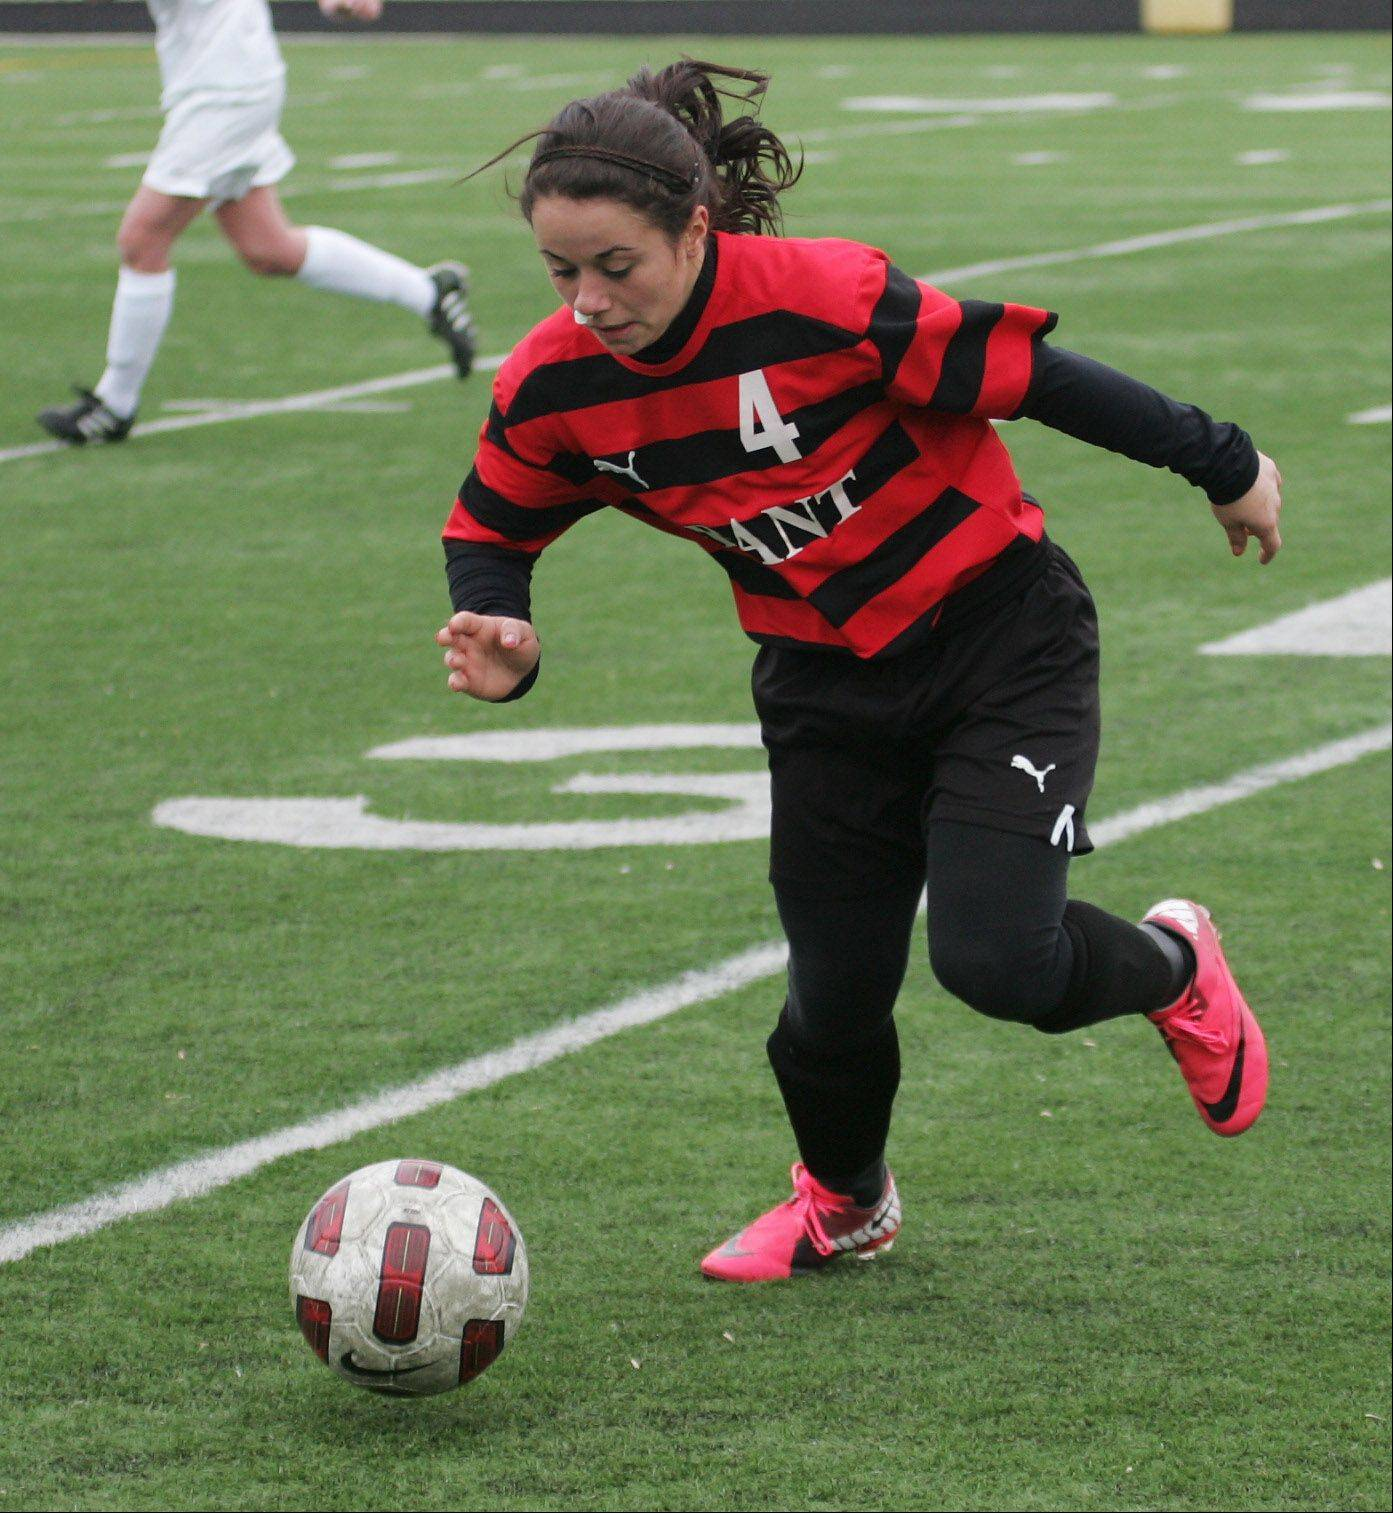 Grant midfielder Nina Deliglio dribbles against host Grayslake Central on Wednesday.